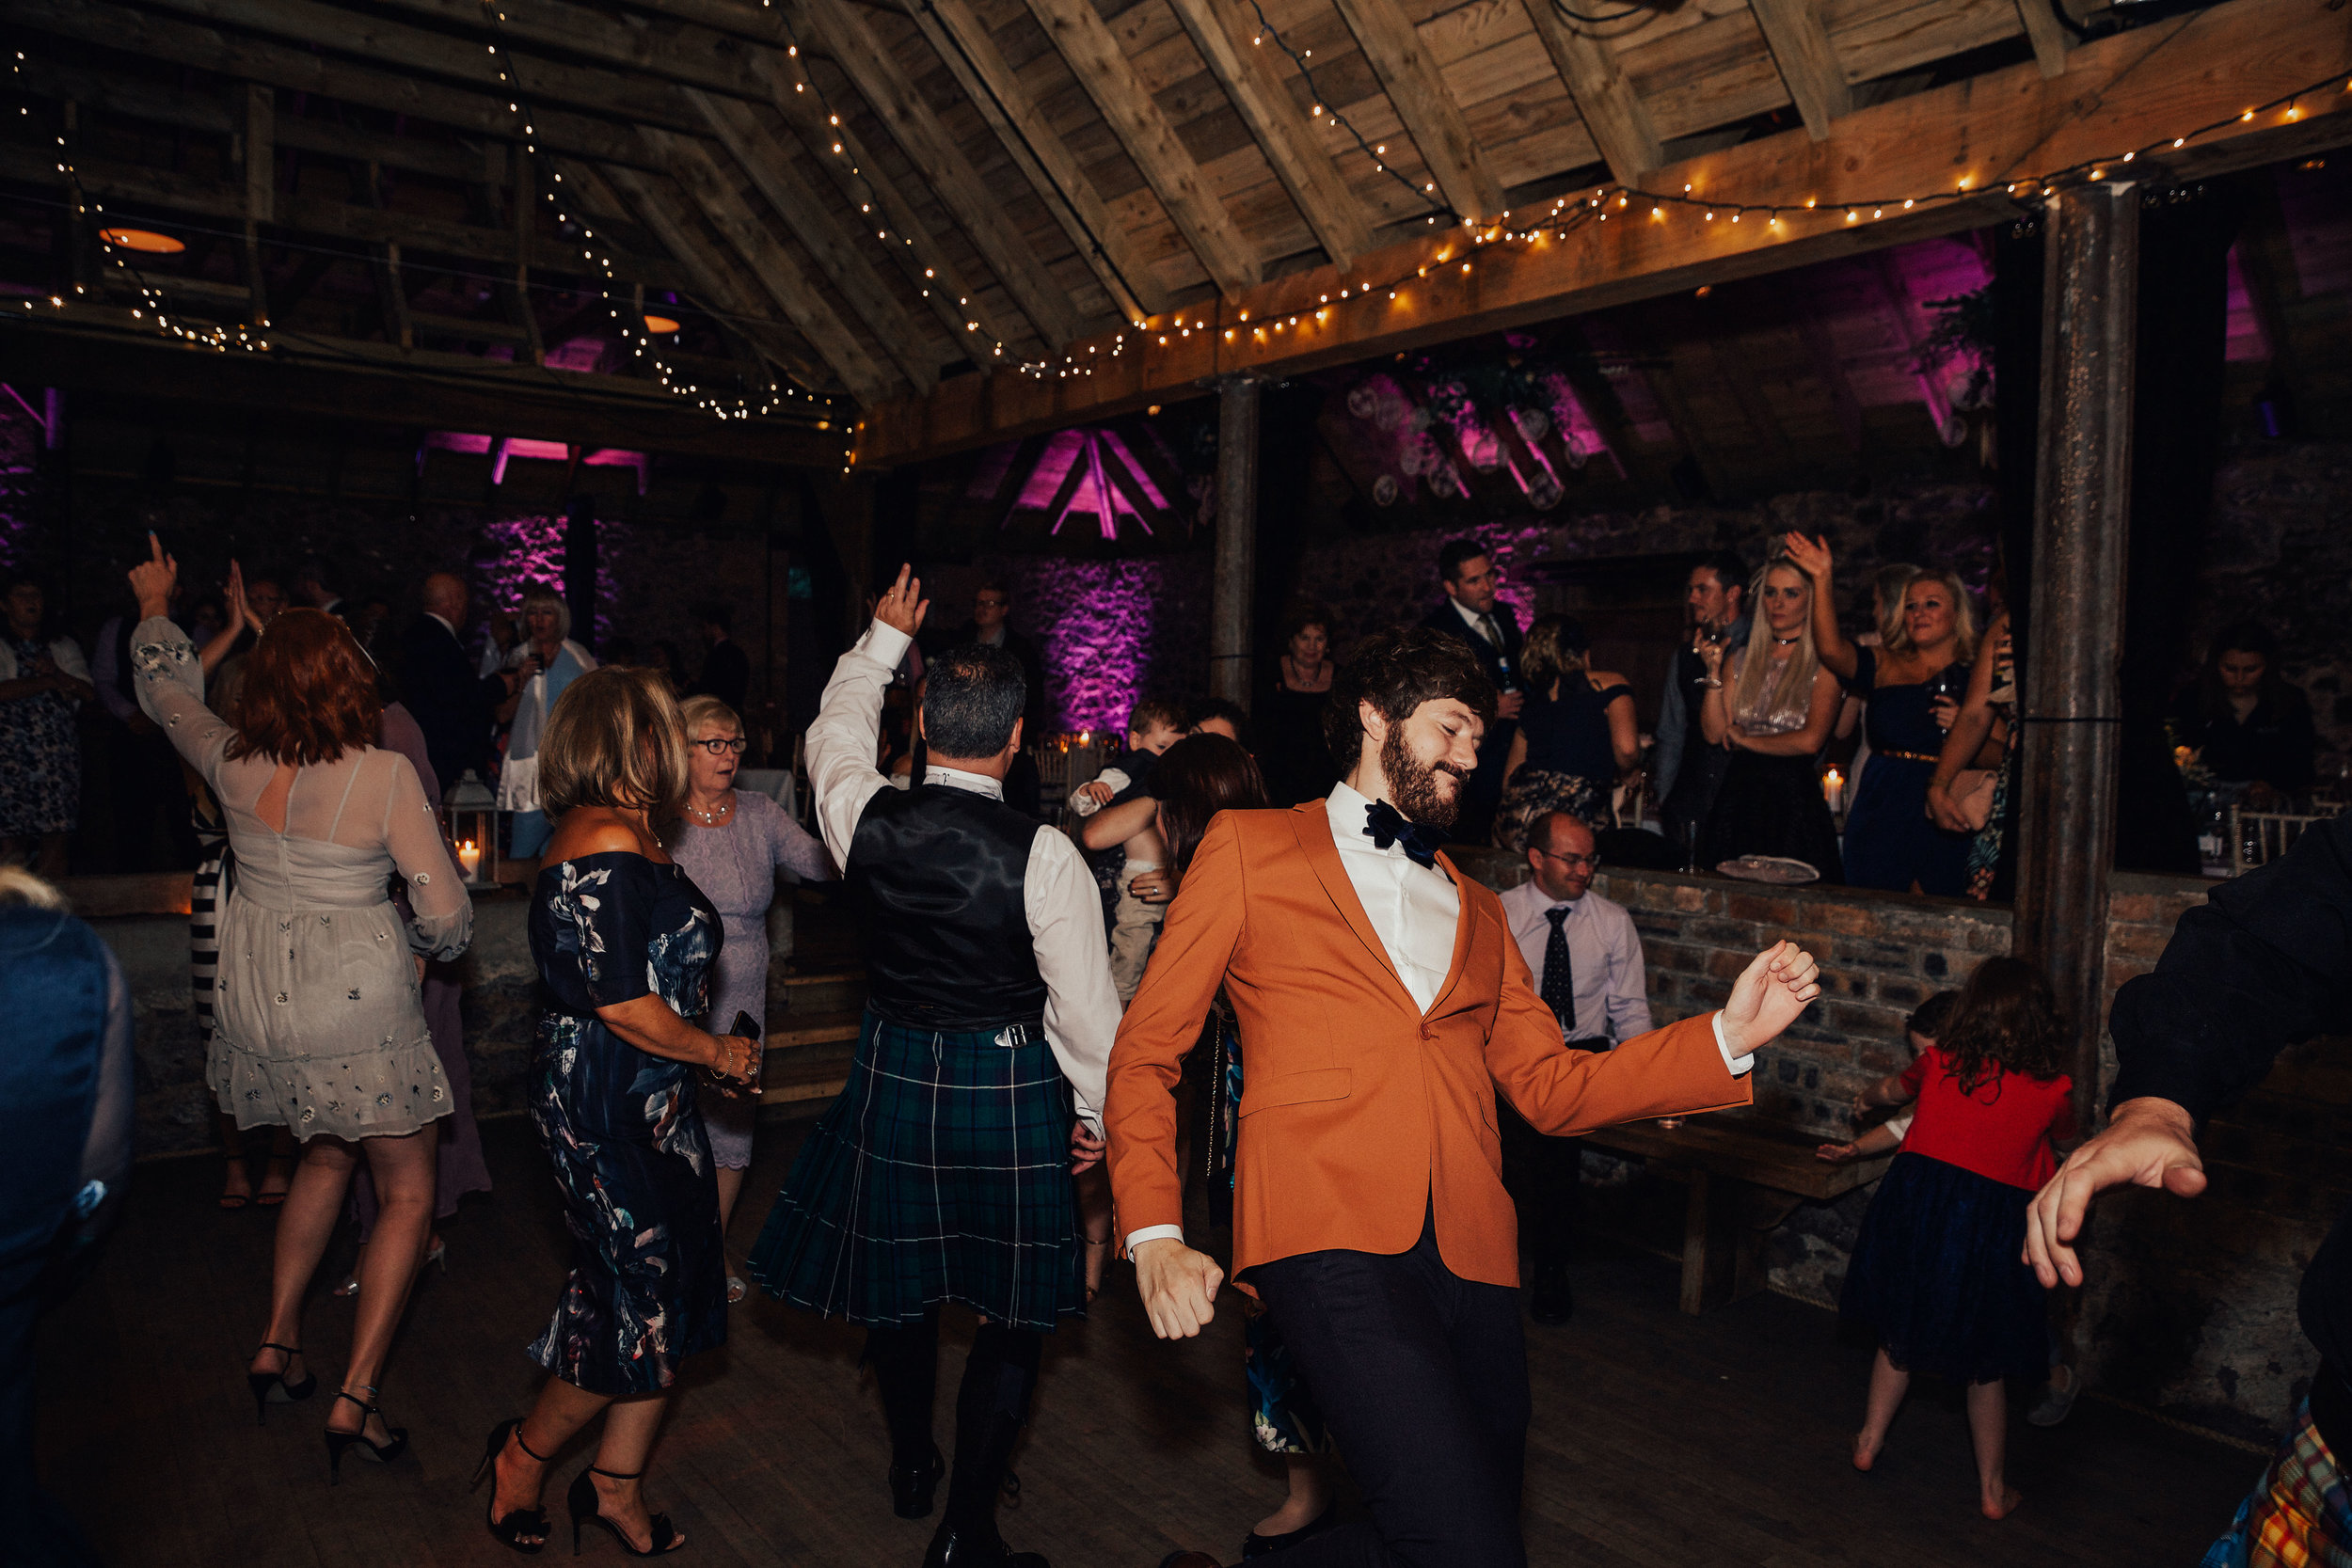 BYRE_AT_INCHYRA_WEDDING_PHOTOGRAPHER_PJ_PHILLIPS_PHOTOGRAPHY_KAYLEIGH_ANDREW_164.jpg